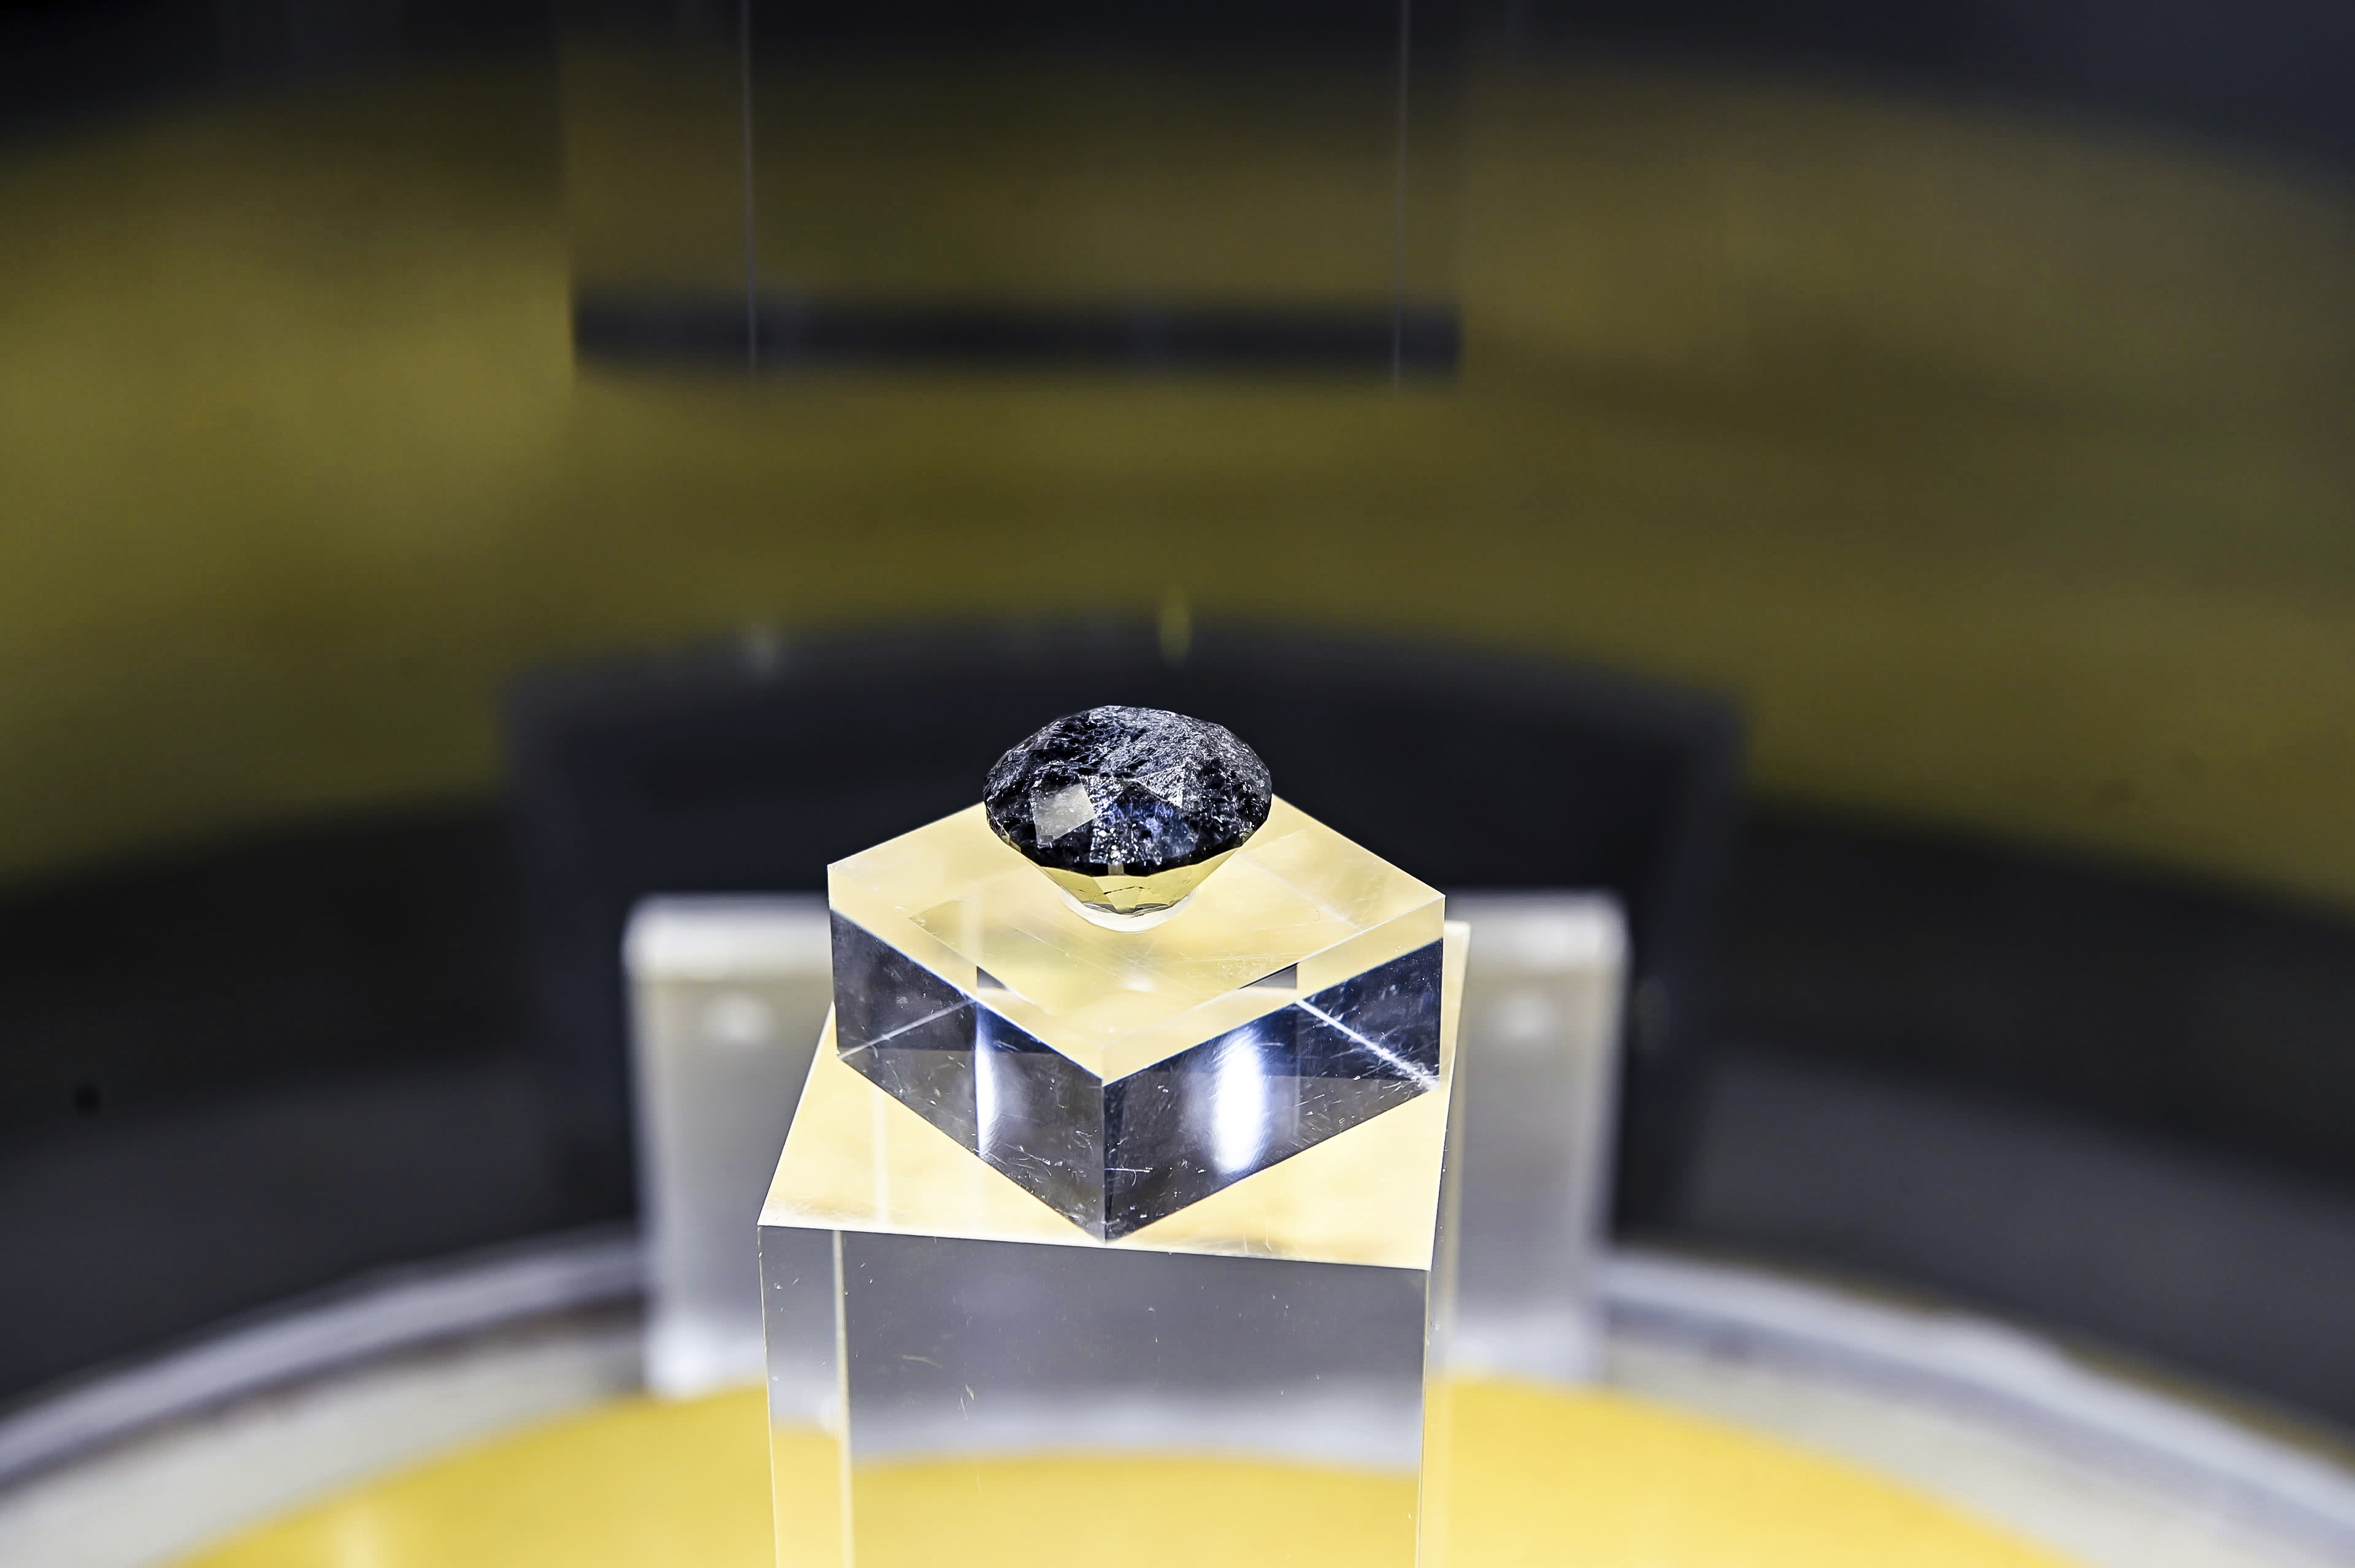 An 88-carat super black diamond, is on display at the 2020 China International Import Expo in Shanghai.